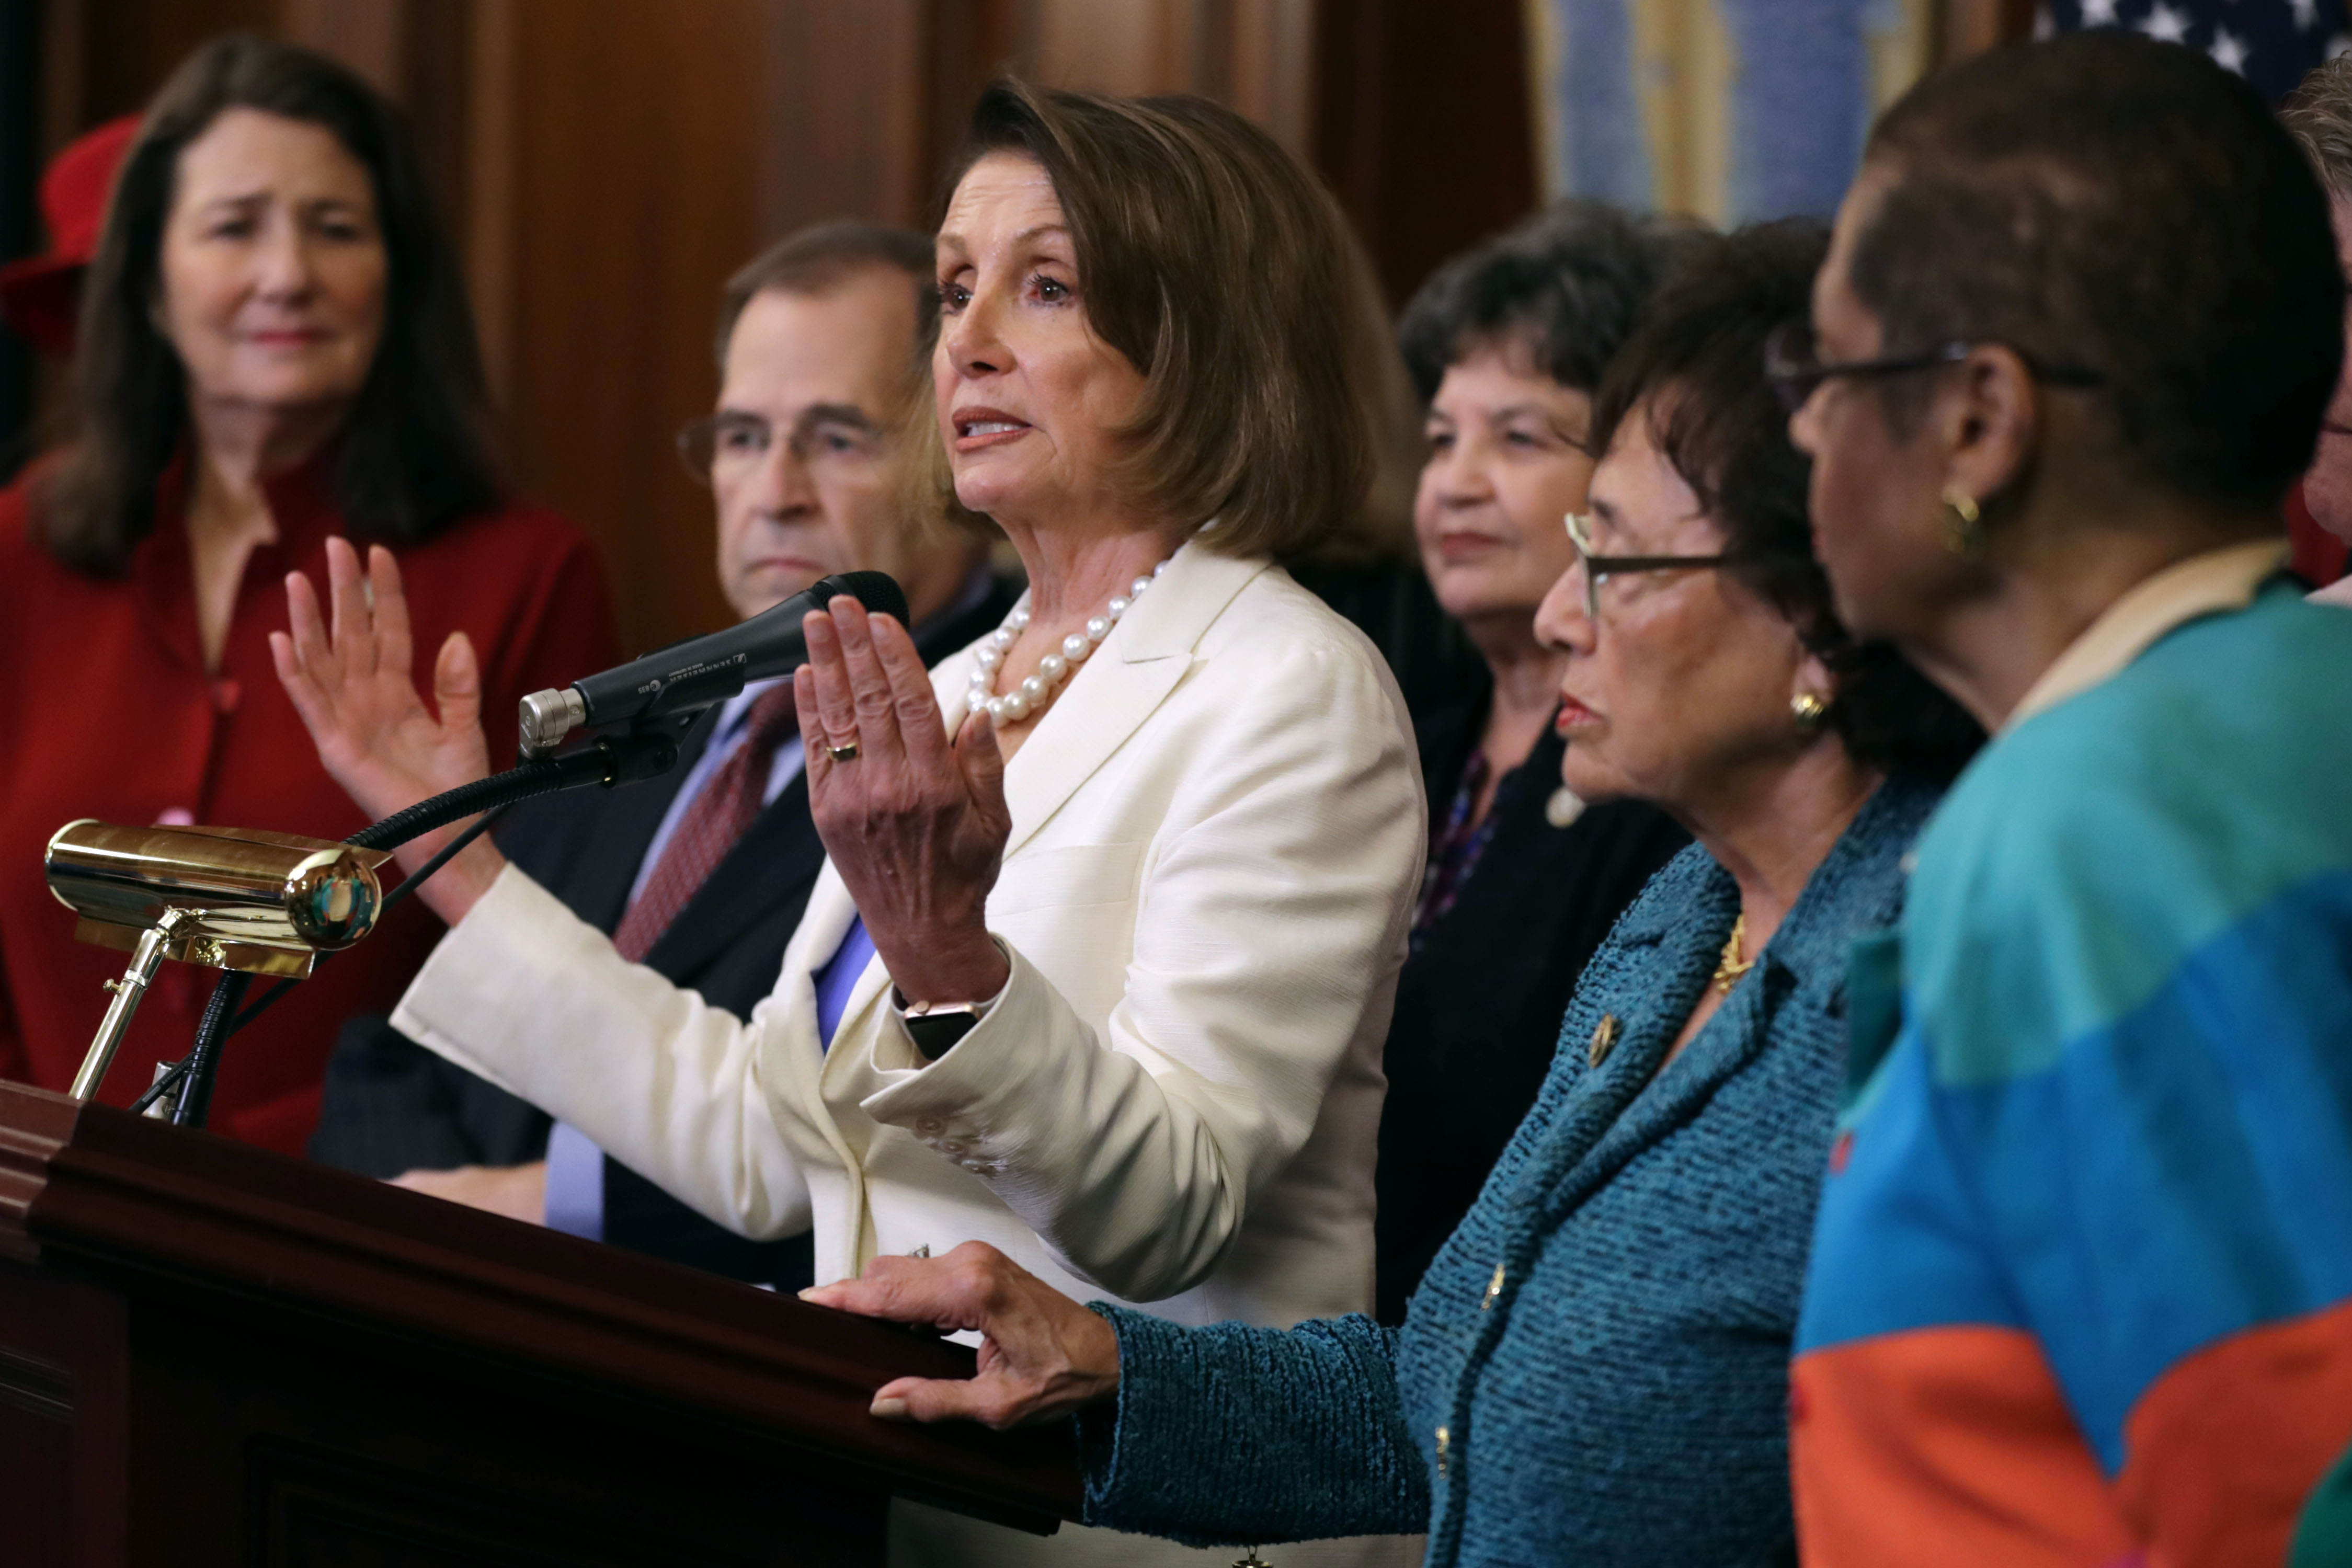 House Minority Leader Nancy Pelosi (D-CA) (C) is joined by Democratic members of the House of Representatives to rally support for Dr. Christine Blasey Ford in the Rayburn Room in the U.S. Capitol September 26, 2018 in Washington, DC. Chip Somodevilla/Getty Images